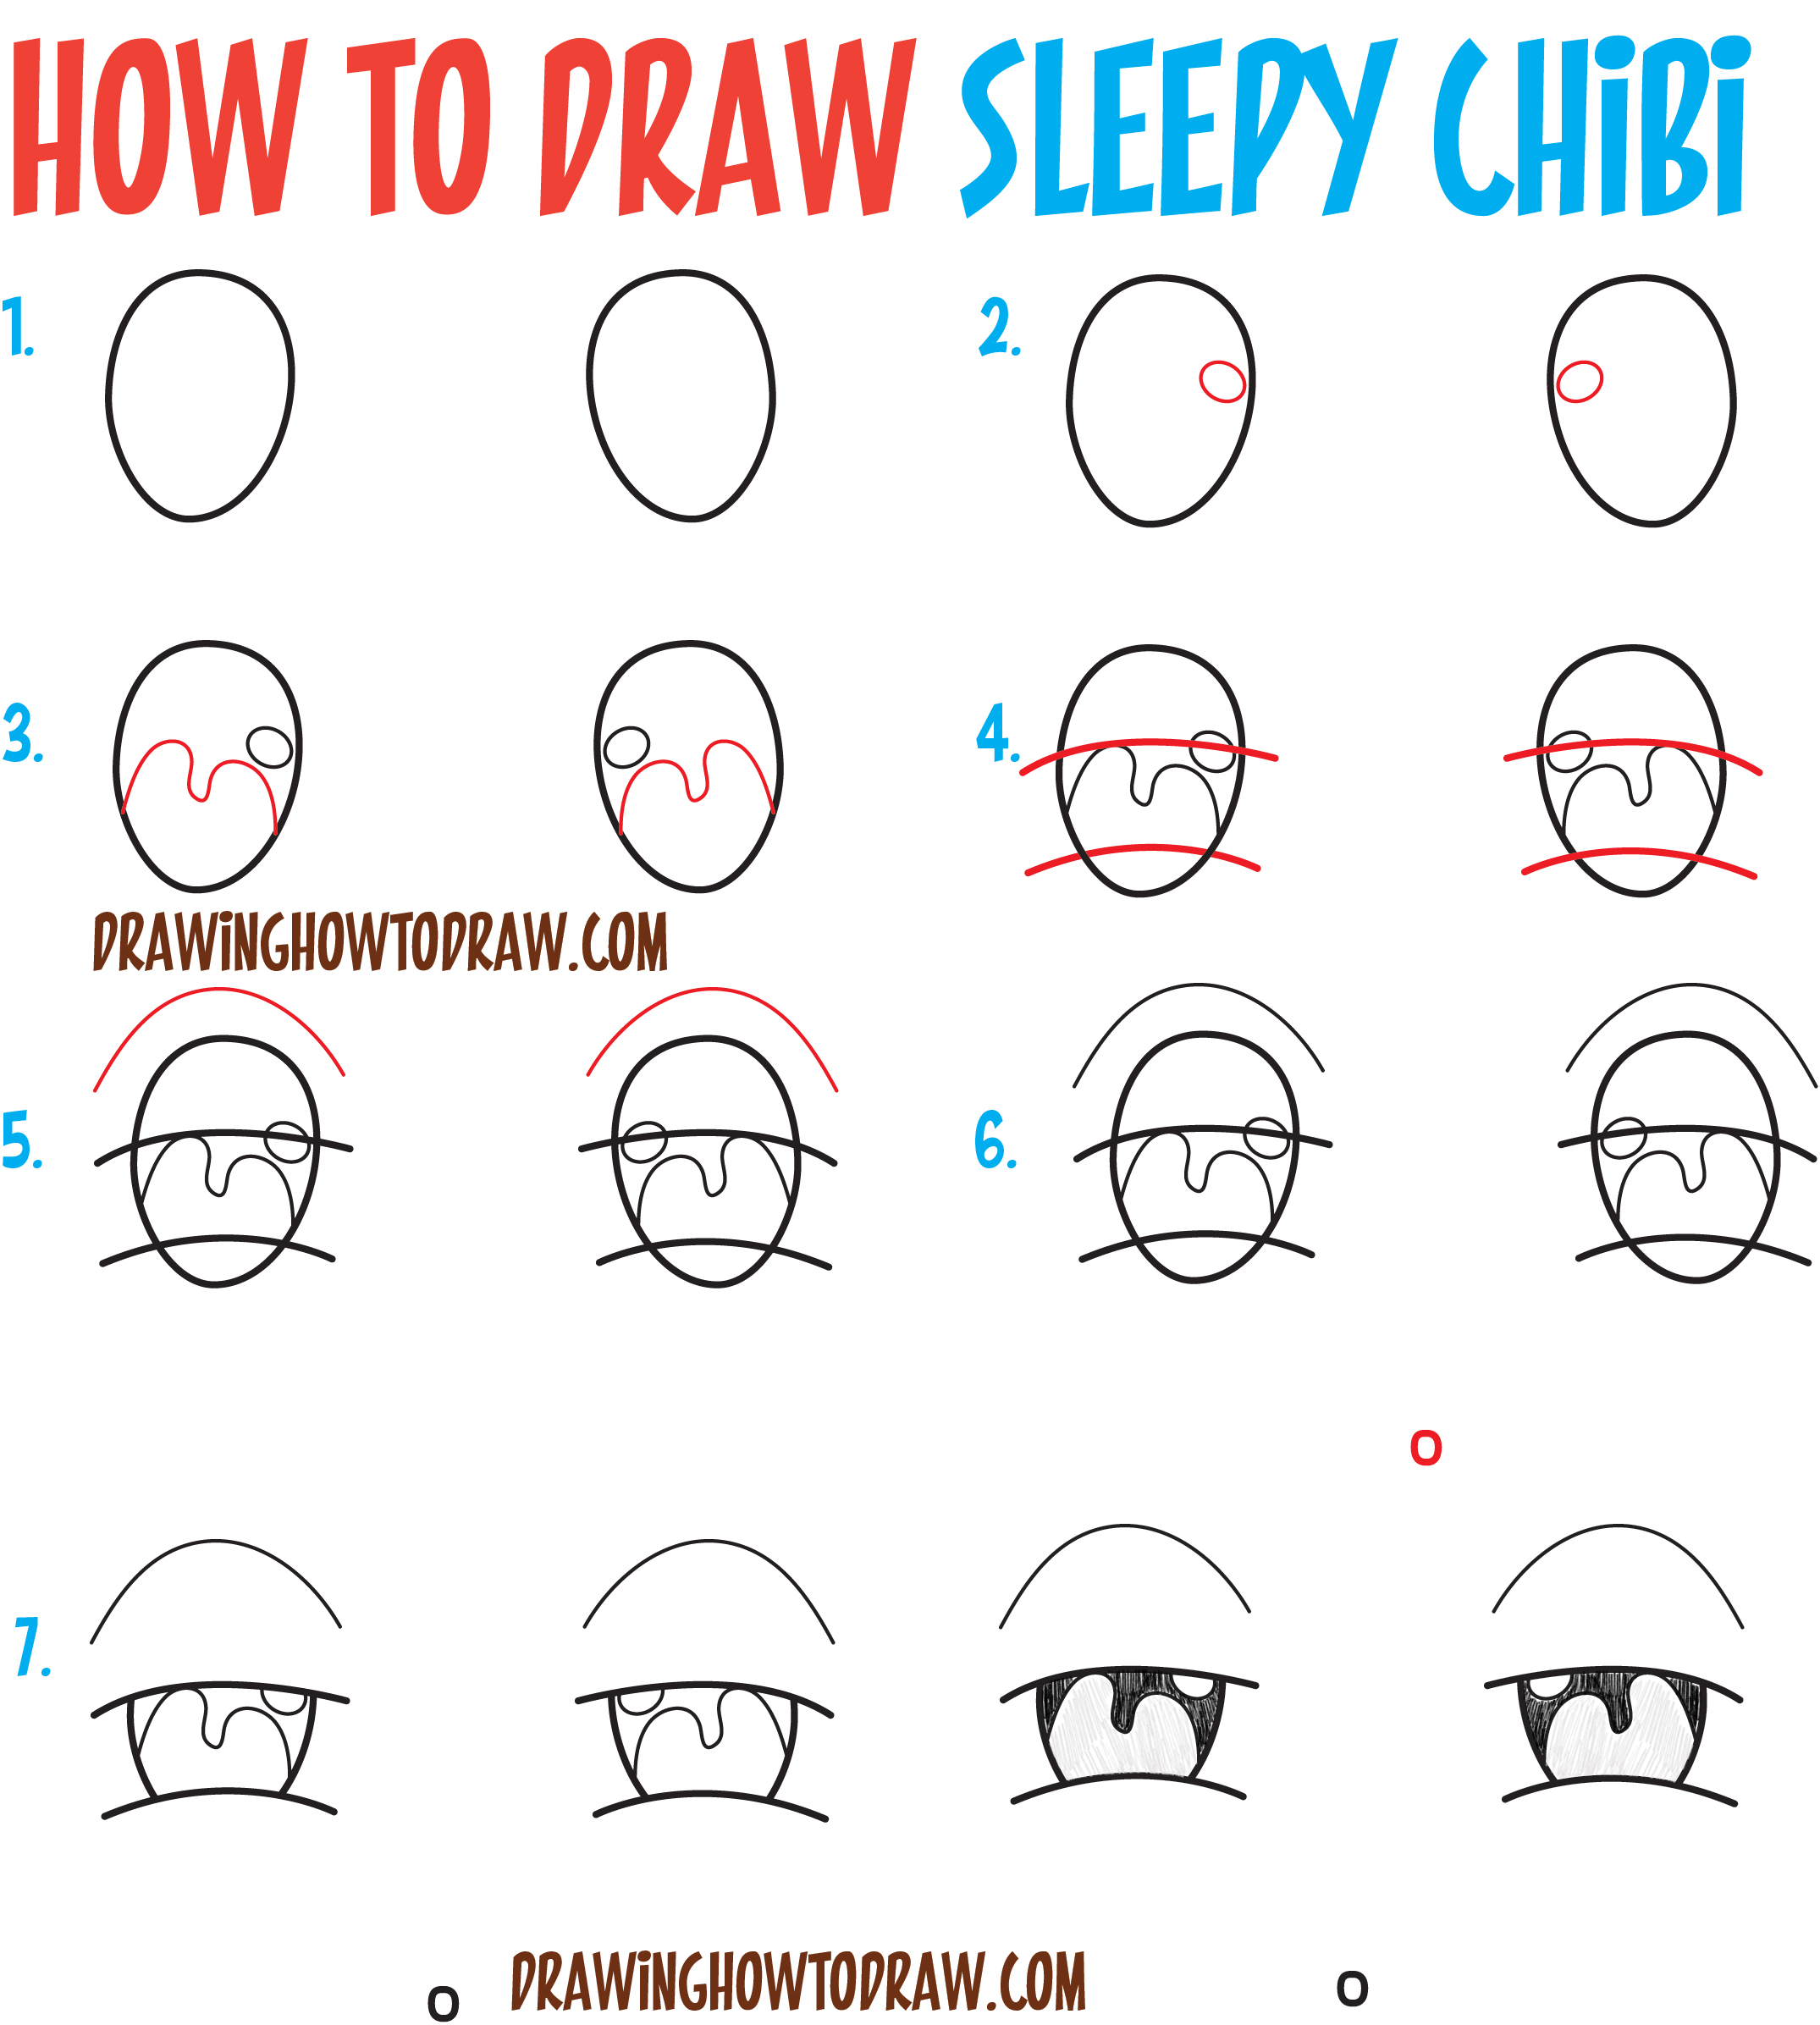 How to Draw Tired / Sleepy / Exhausted Chibi Expressions - Easy Step by Step Drawing Tutorial for Beginners